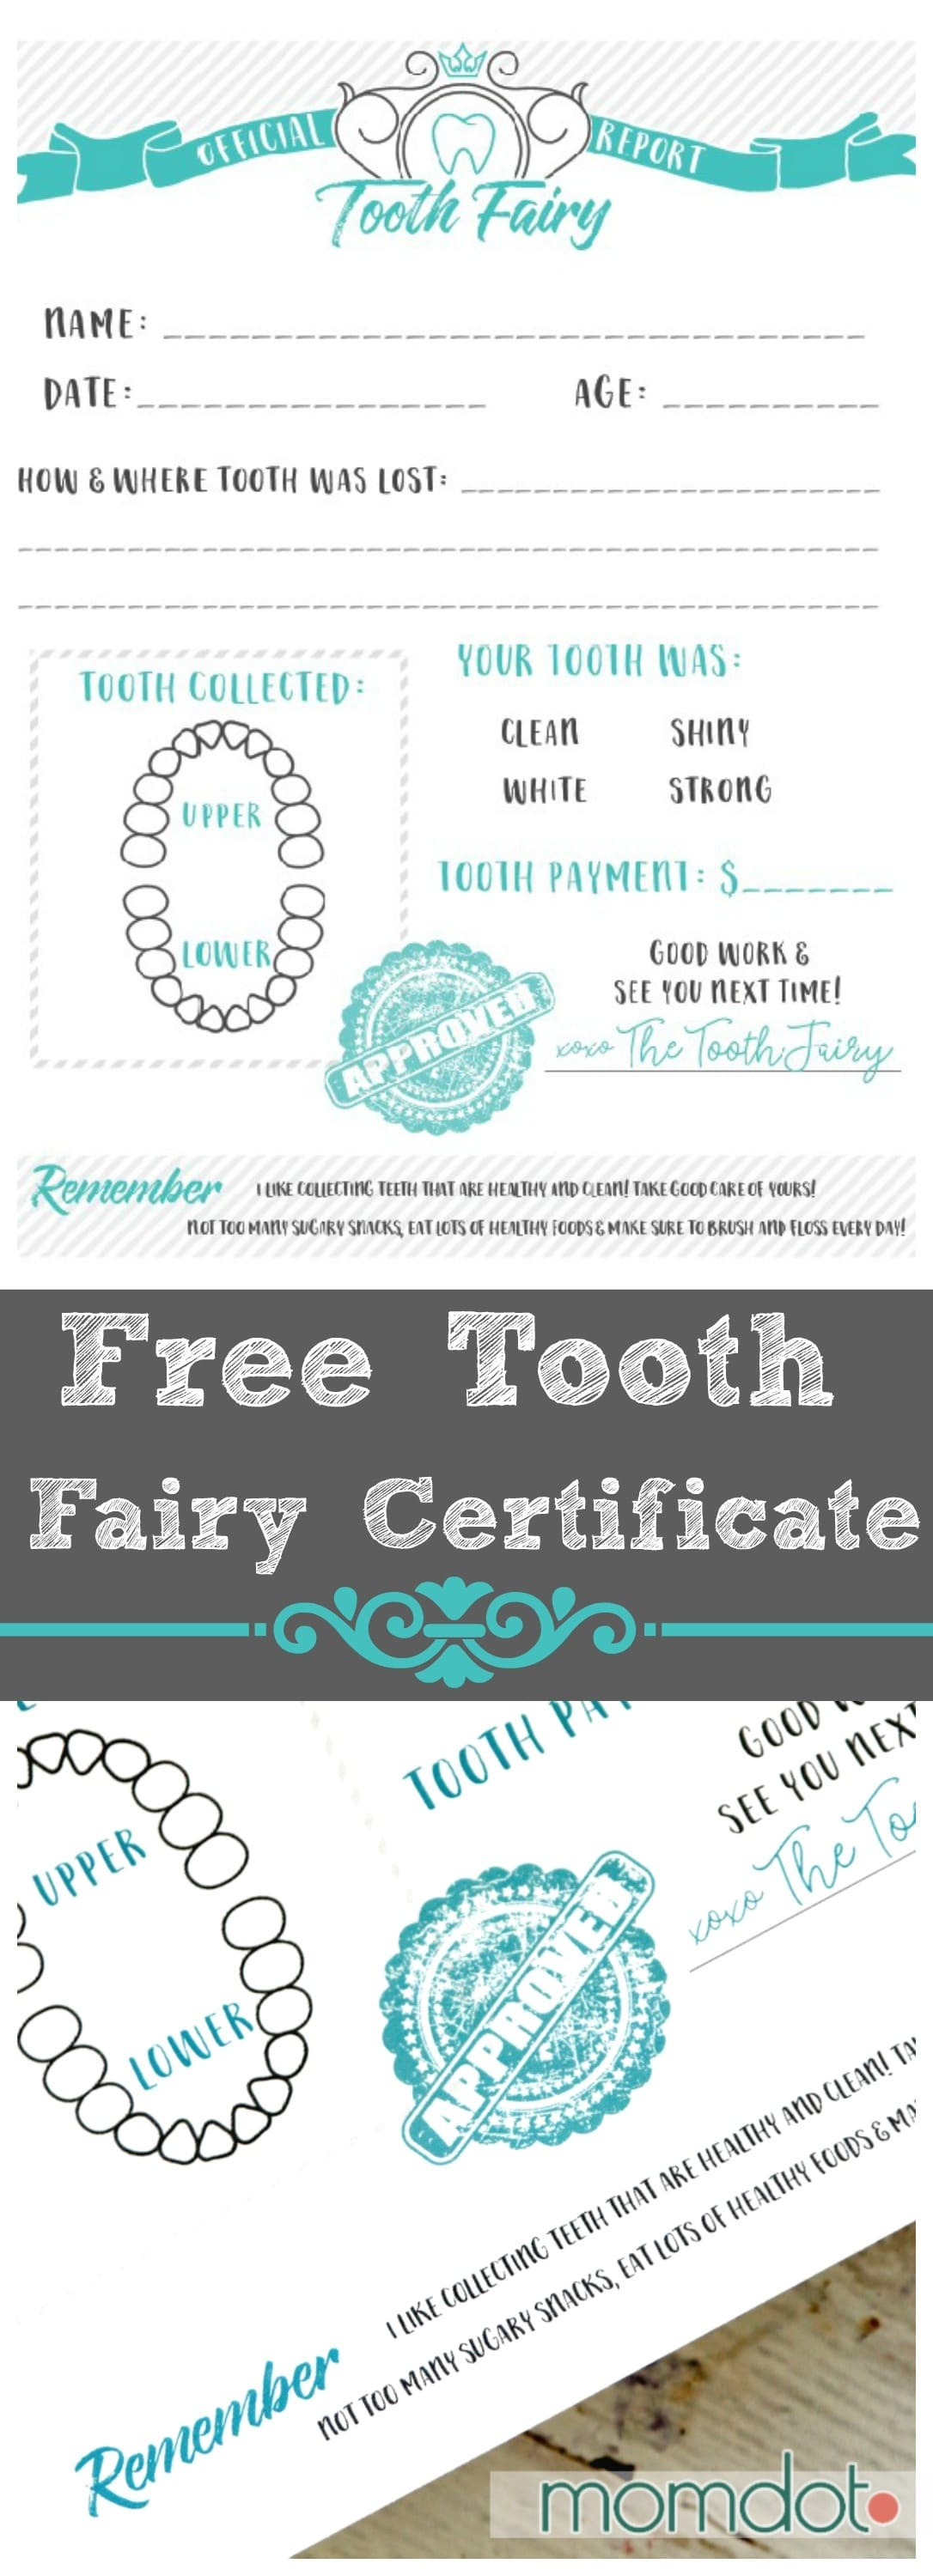 Tooth Fairy Free Printable Certificate - Free Printable Tooth Fairy Certificate